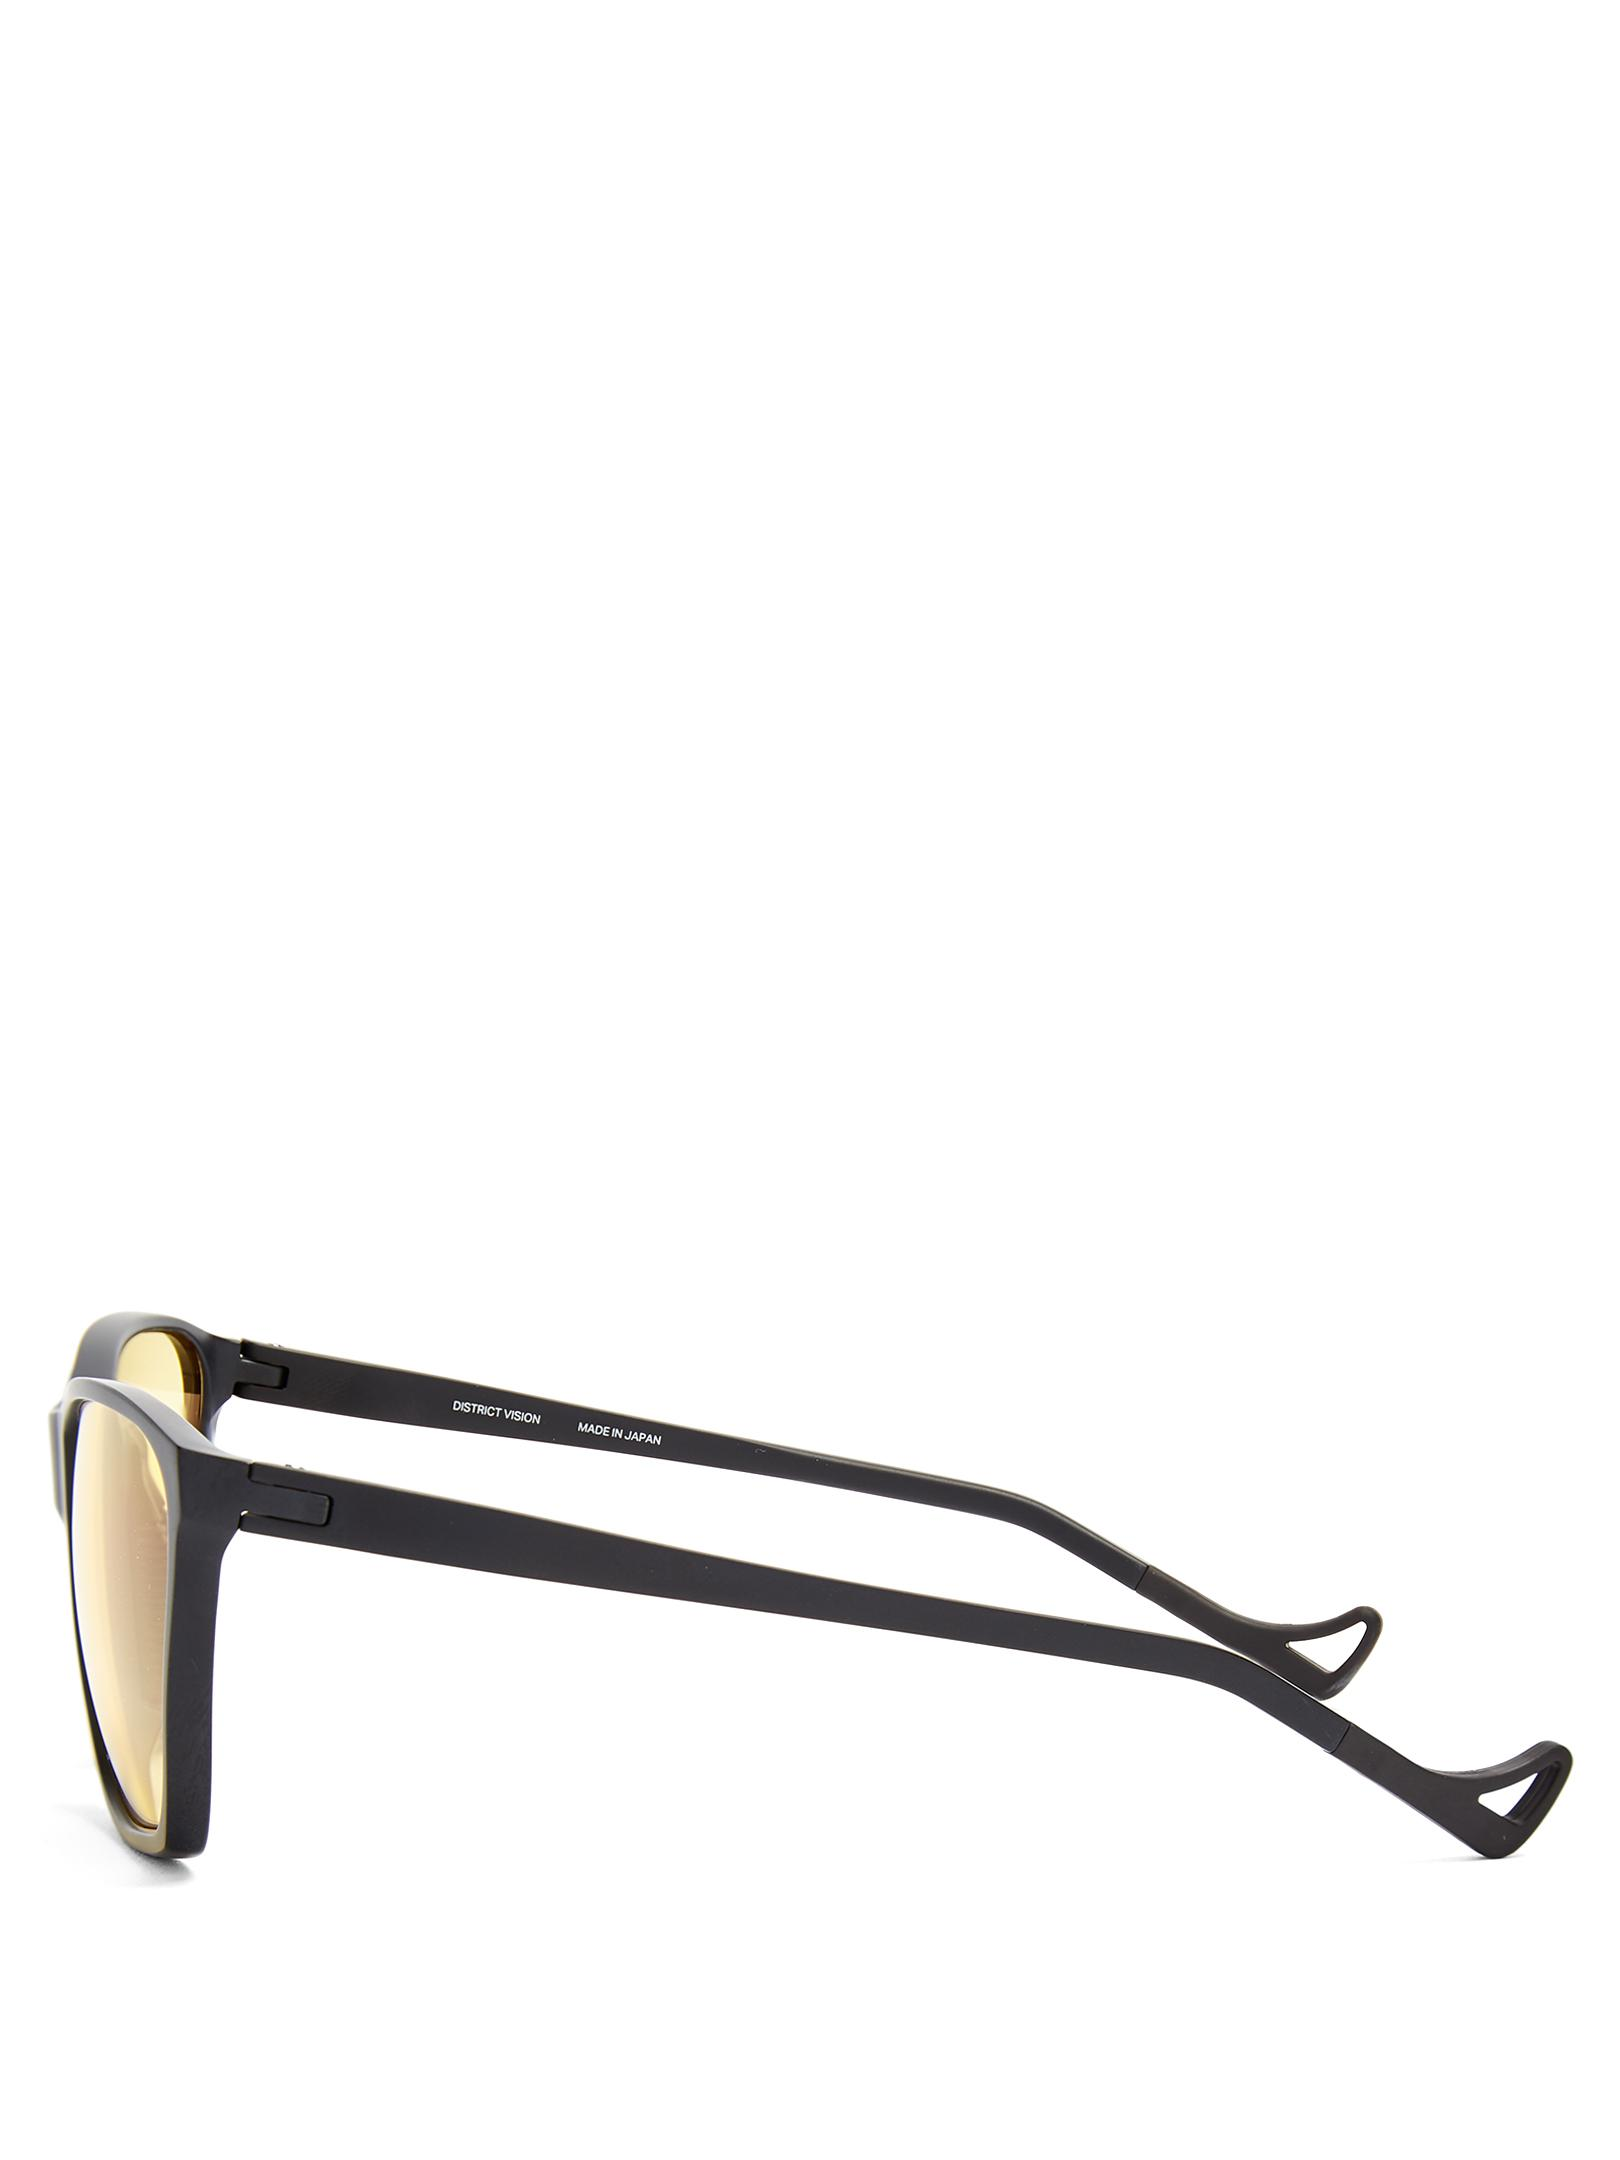 District Vision Synthetic Keiichi Square-frame Performance Sunglasses in Black for Men